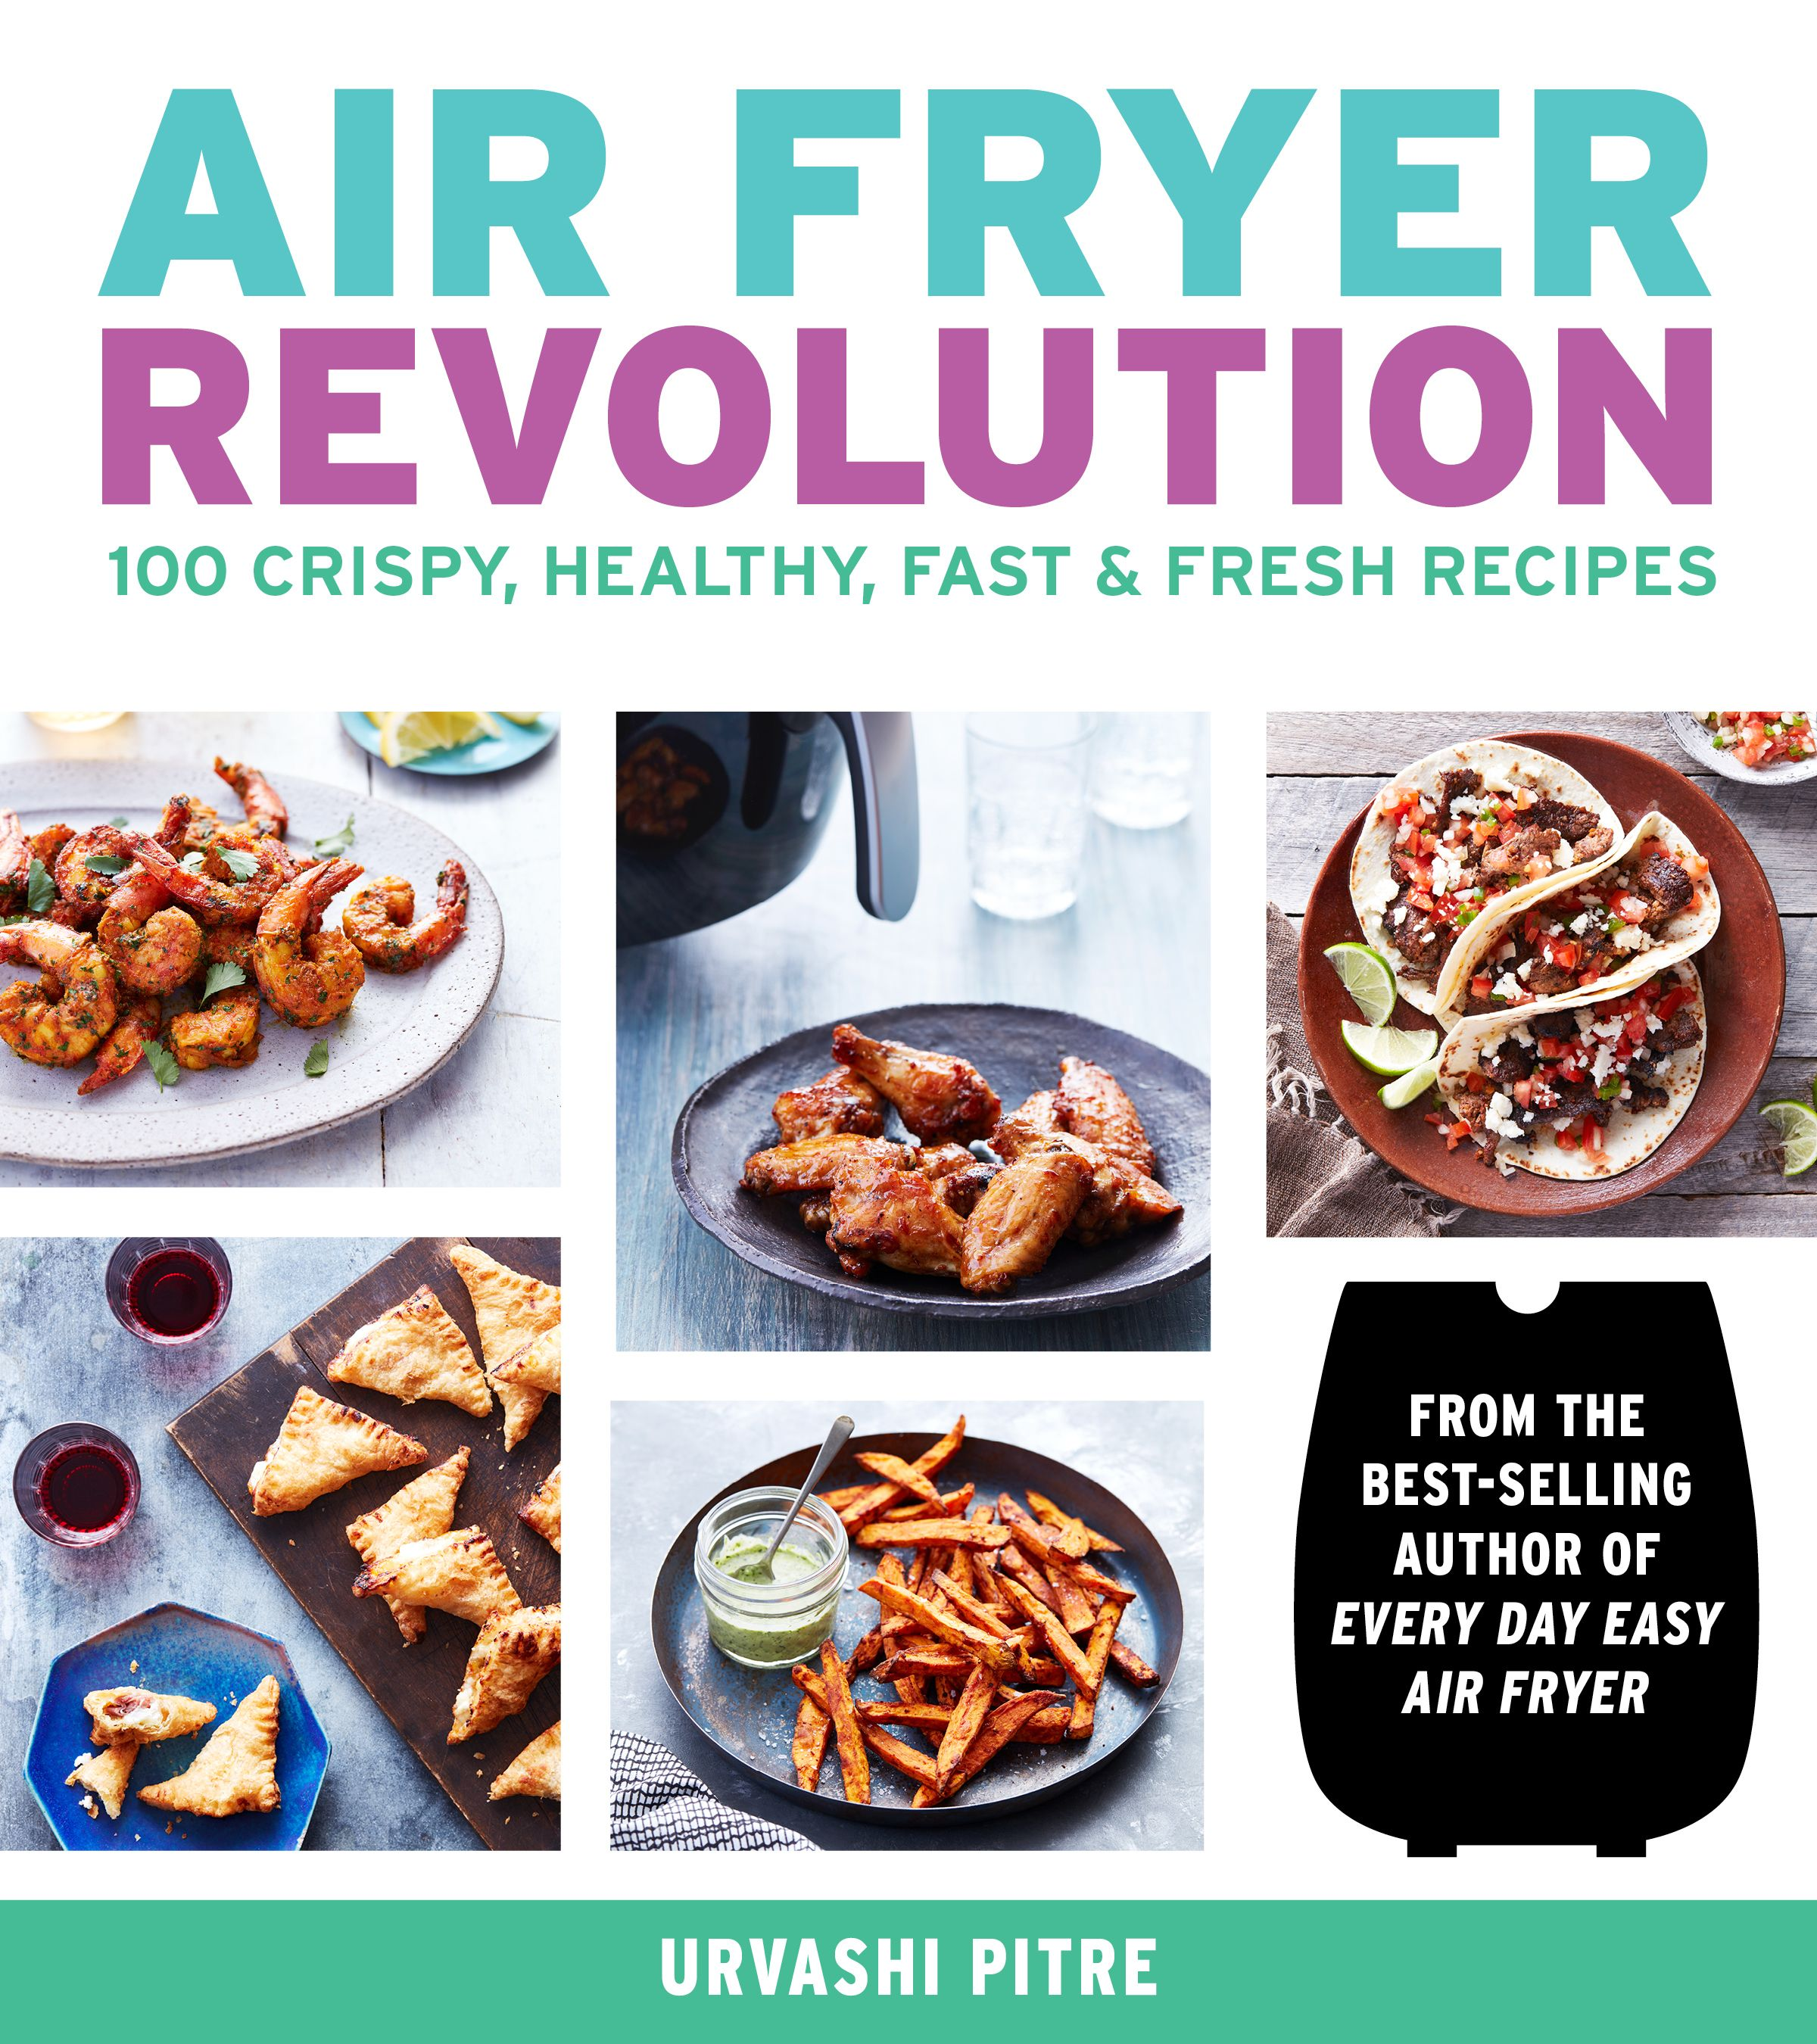 6 Very Good Recipes That Prove an Air Fryer Belongs in Your Kitchen